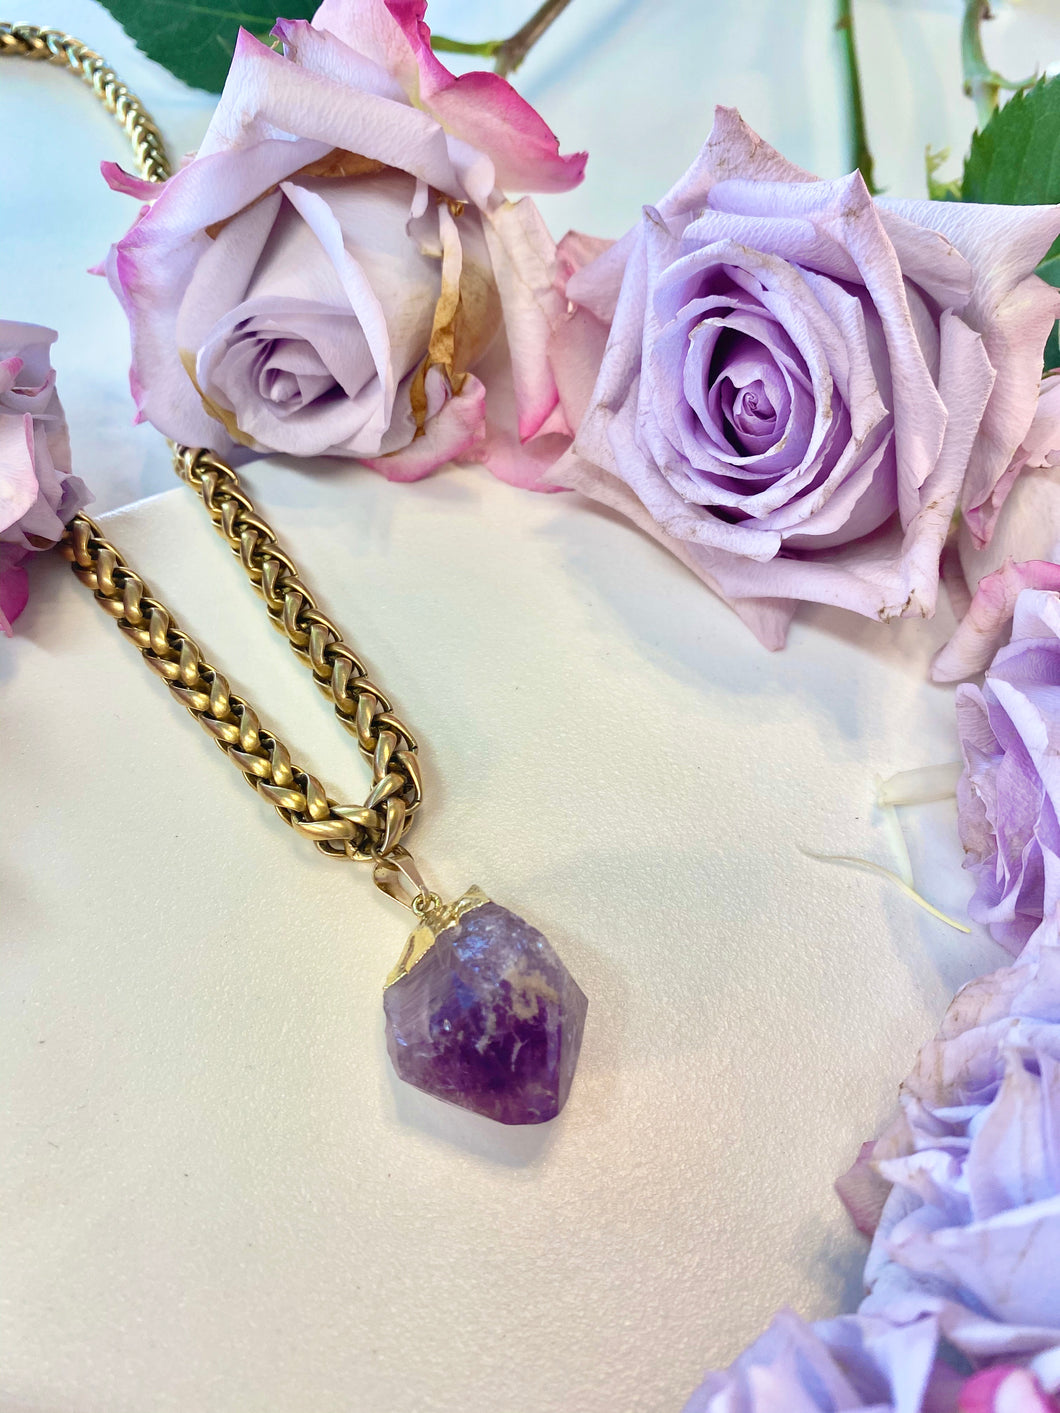 Byzantine Golden Soul Chain Necklace  with Chunky Amethyst Crystal - 24